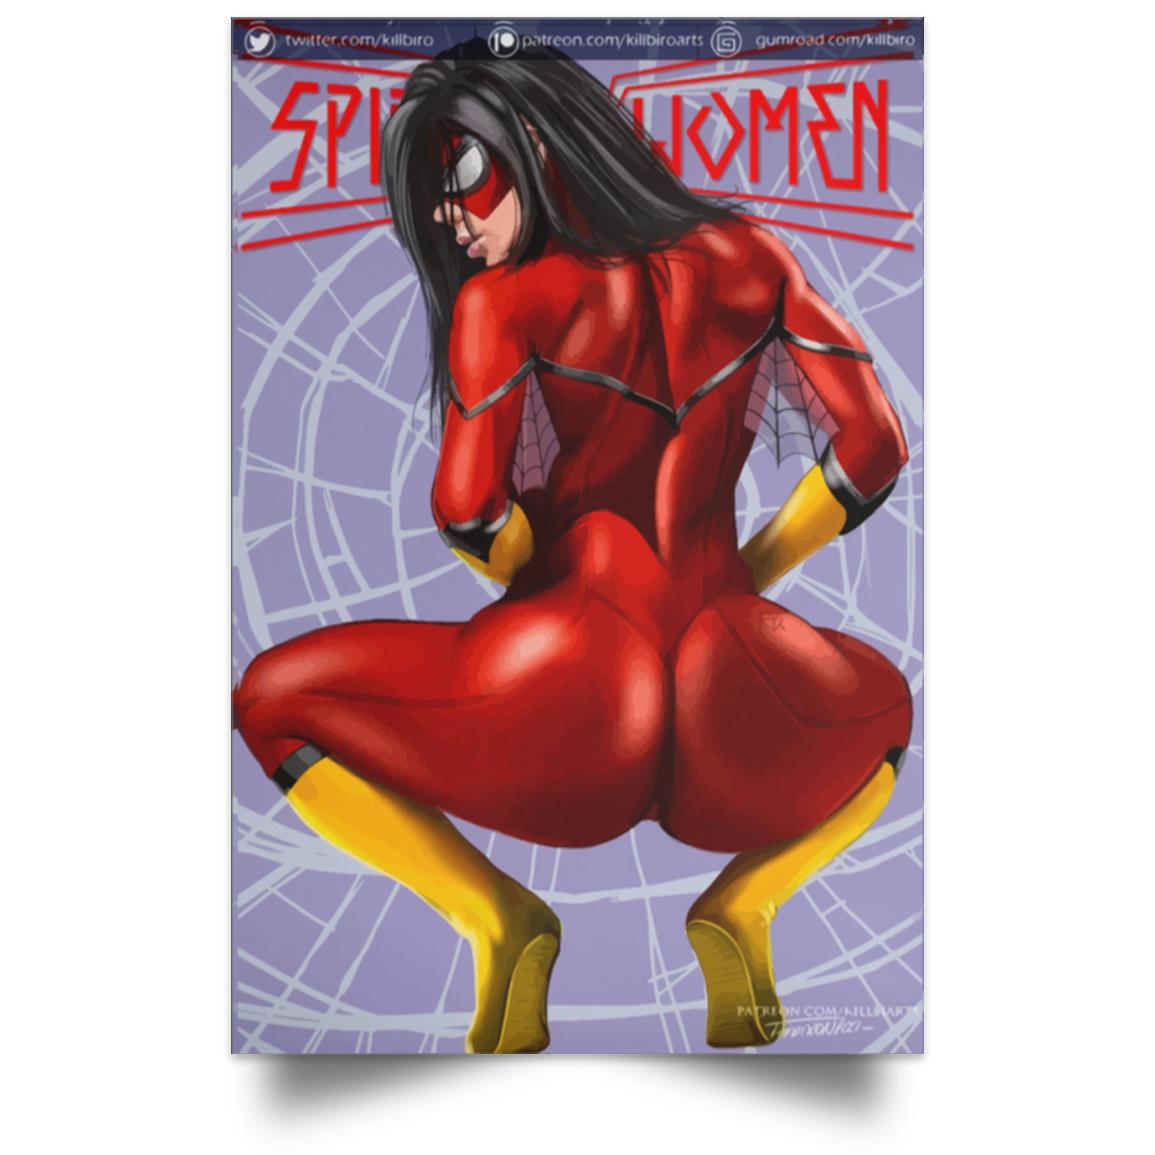 SPIDER-WOMAN POSTER 1